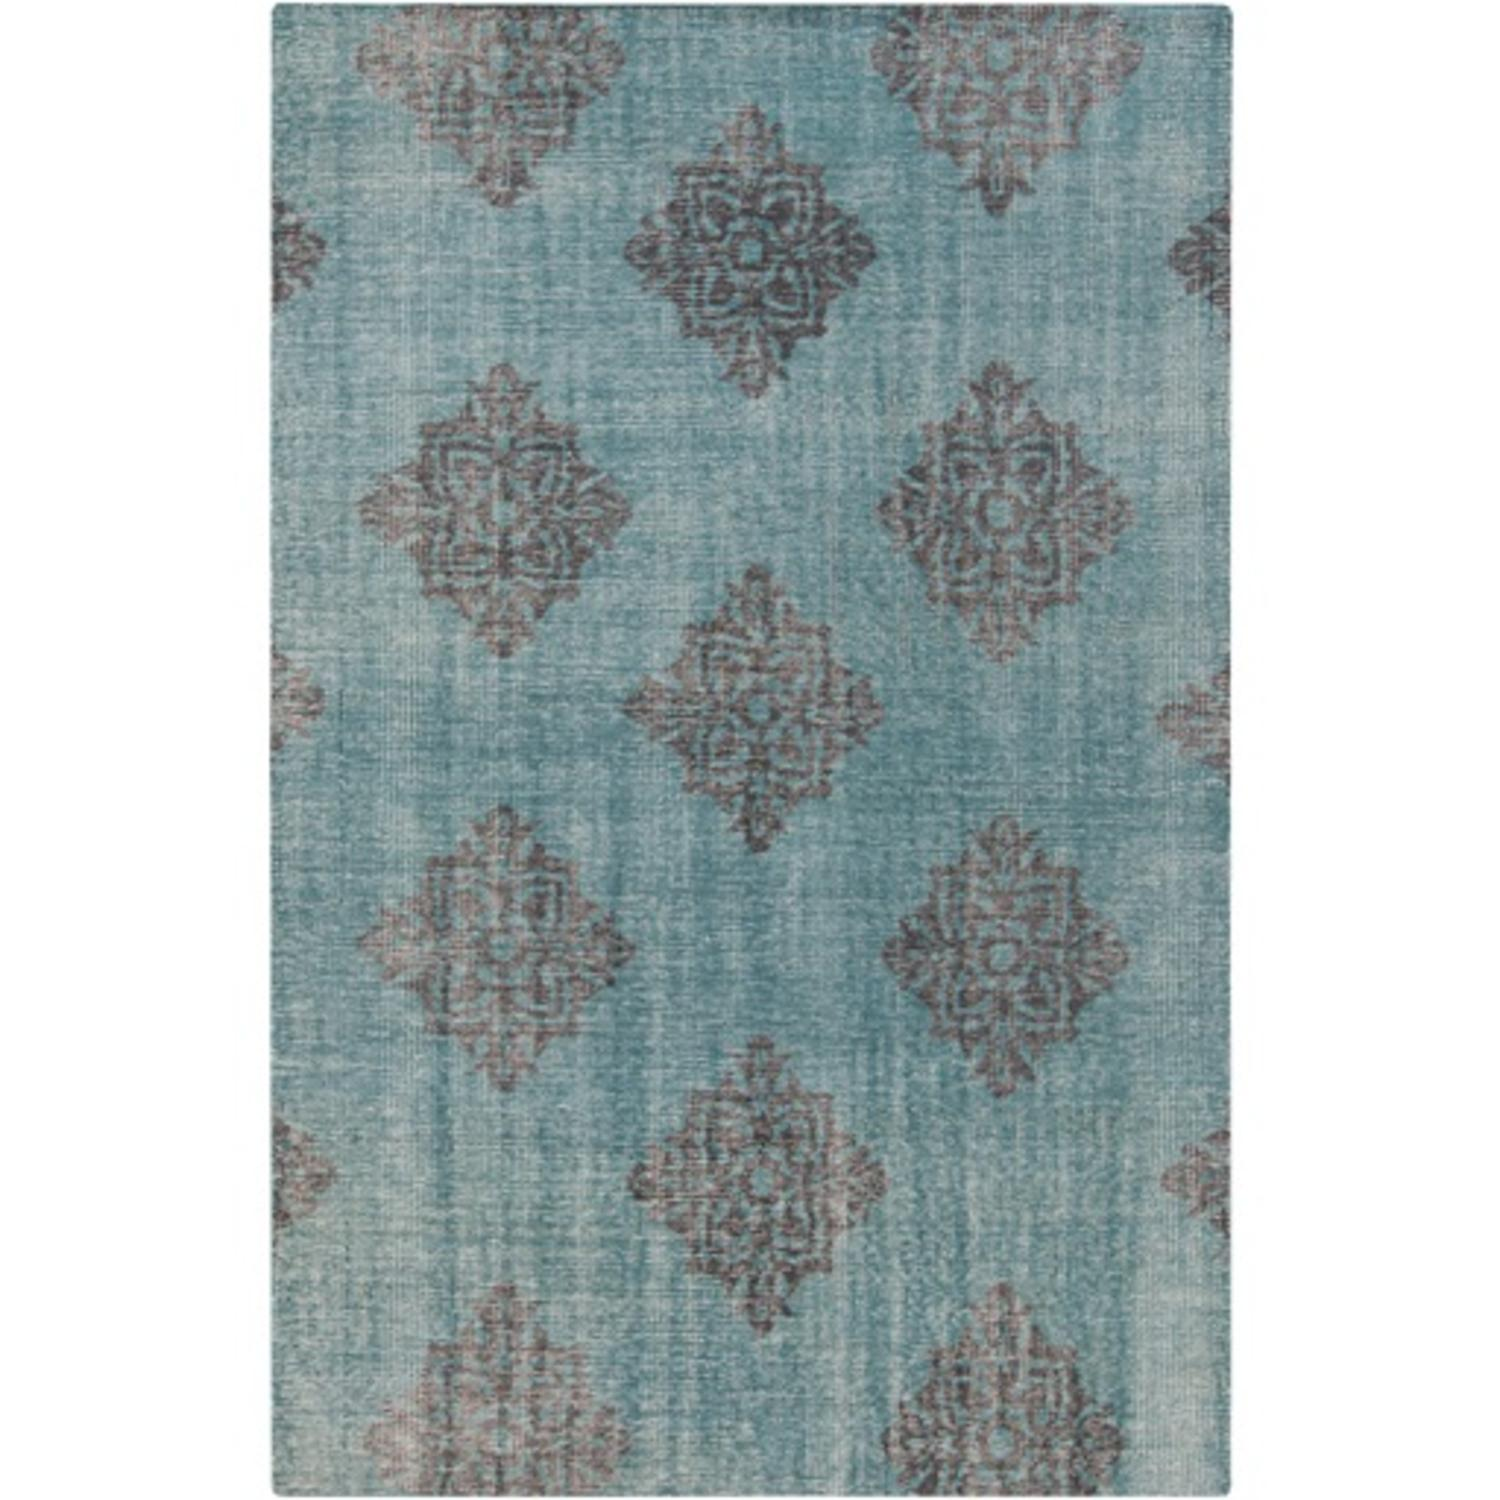 8' x 11' Visual Paragon Teal Blue and Midnight Black Wool Area Rug